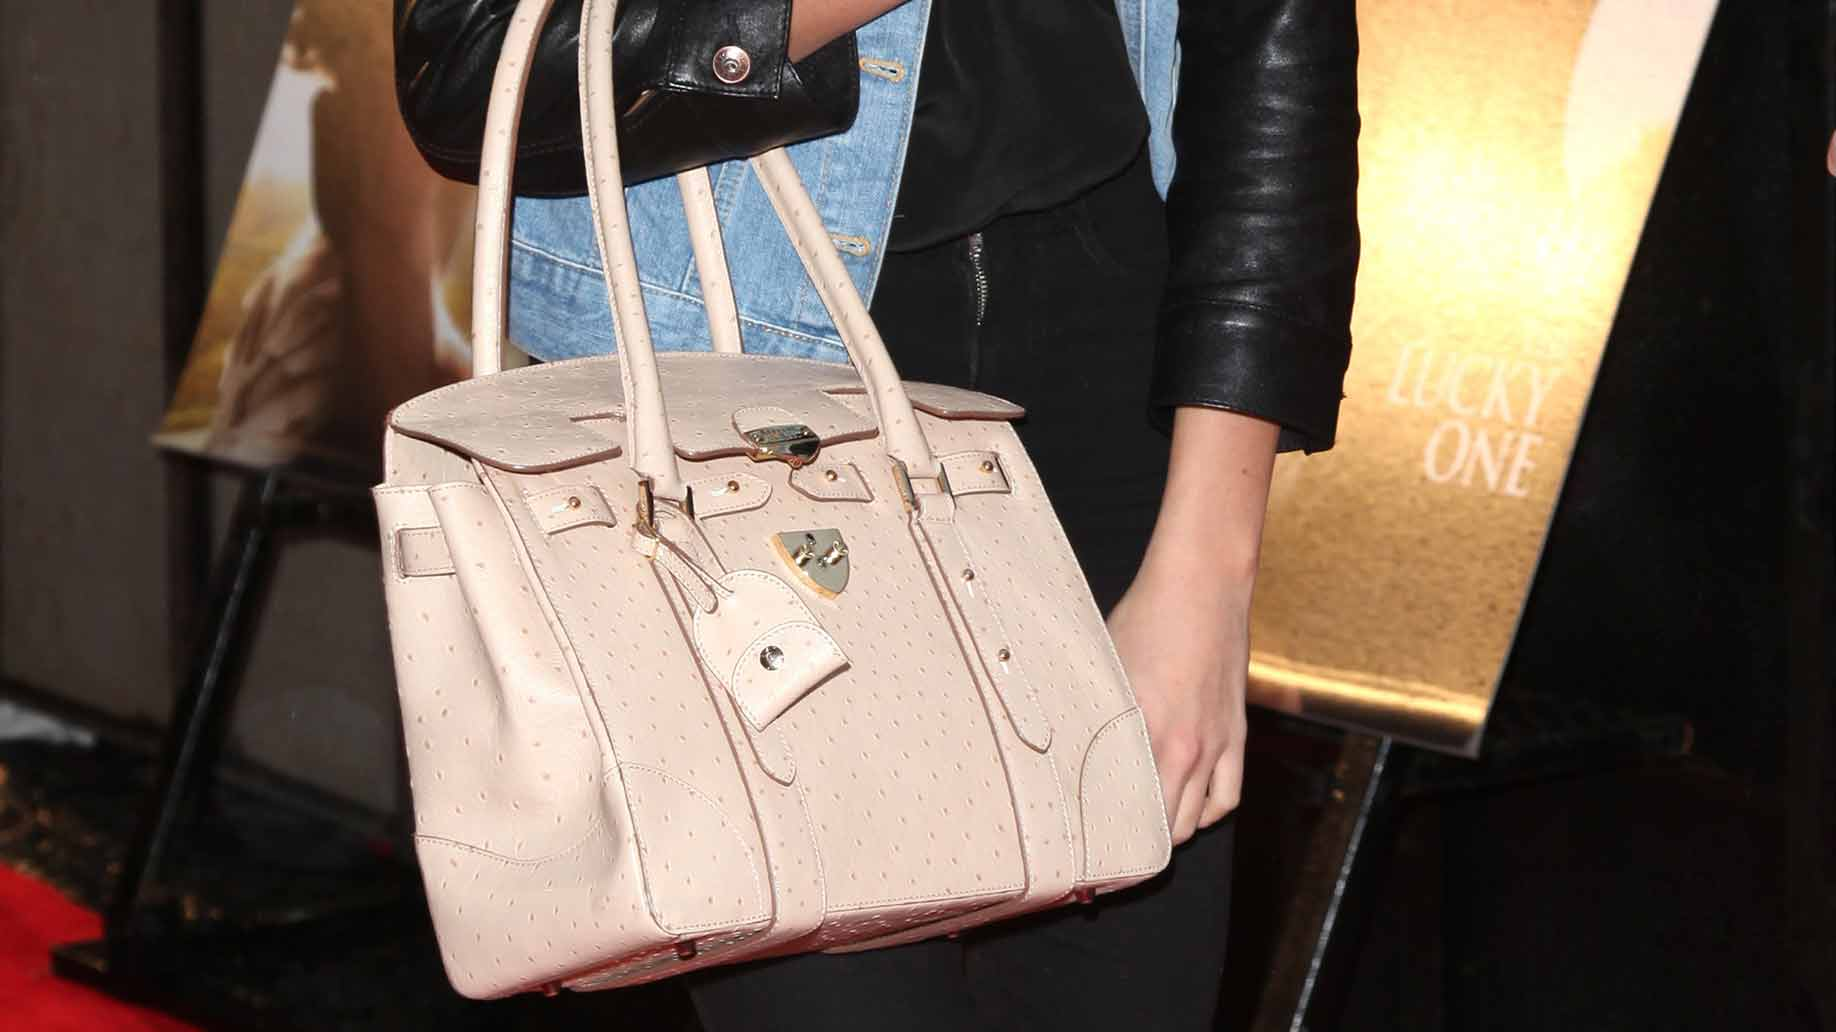 bags that look like hermes birkin - How Much Does a Hermes Birkin Bag Cost - Prices